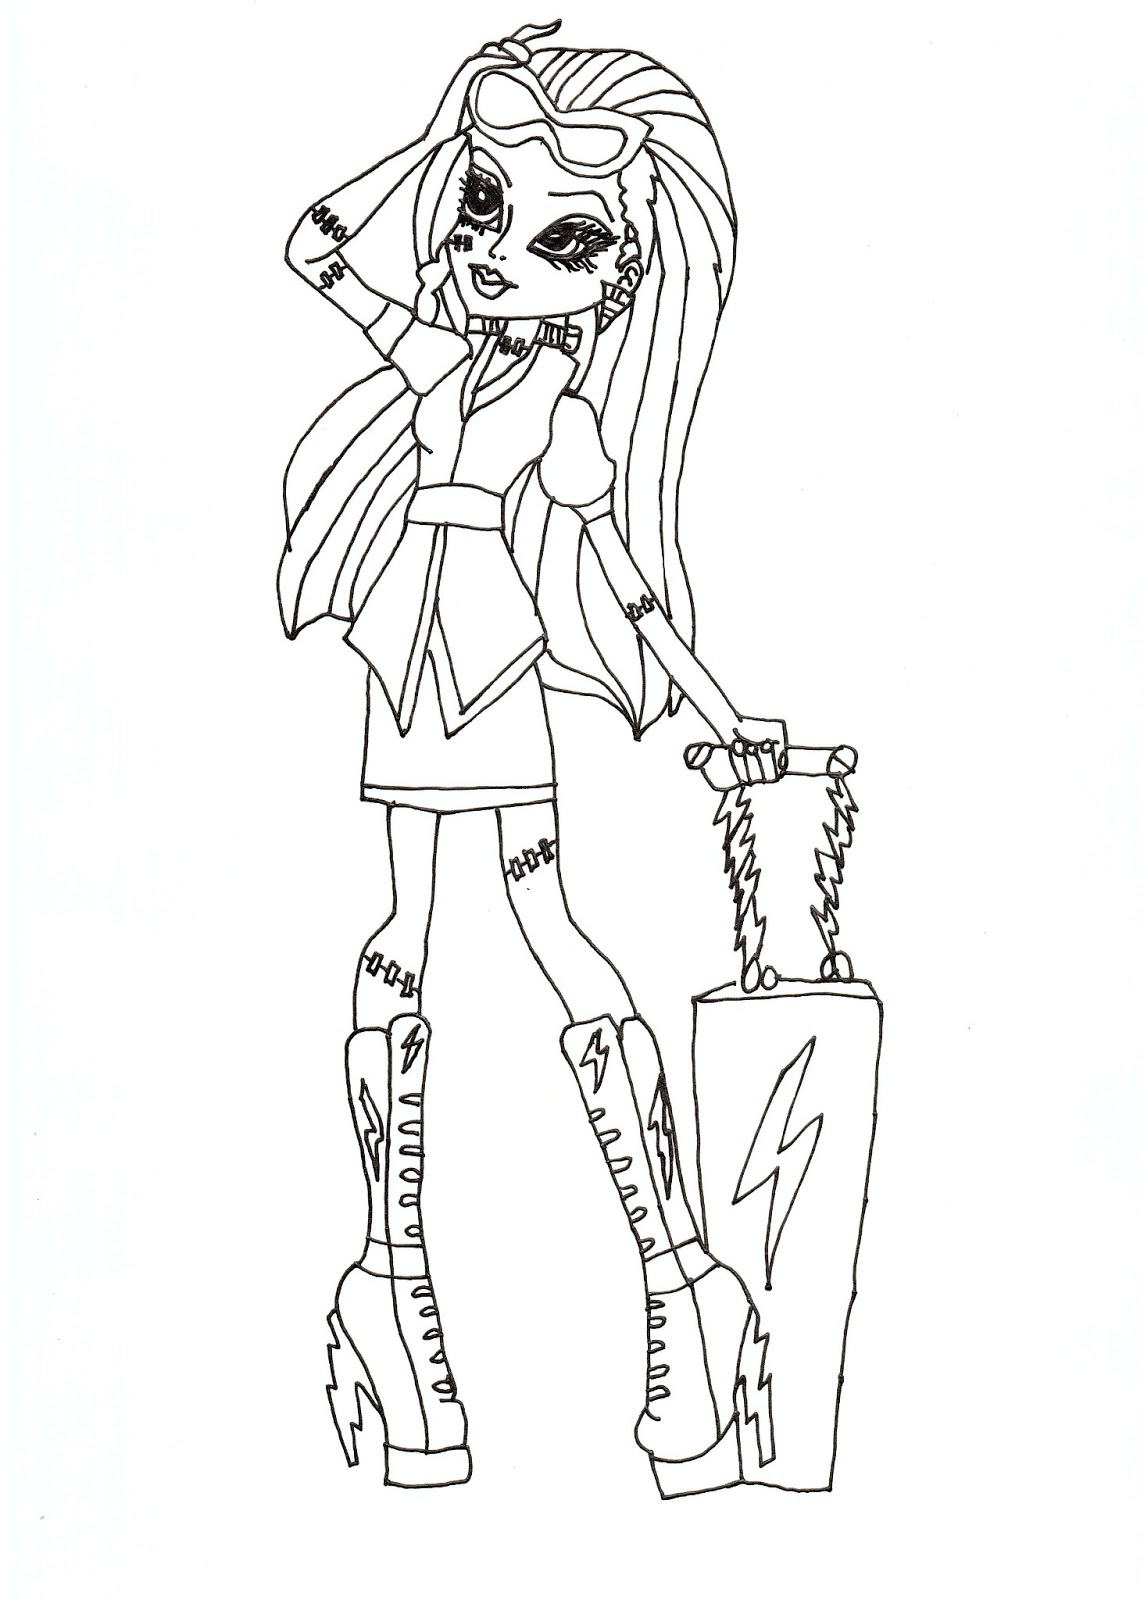 Adult Top Free Printable Monster High Coloring Pages Gallery Images best free printable monster high coloring pages for kids picture gallery images